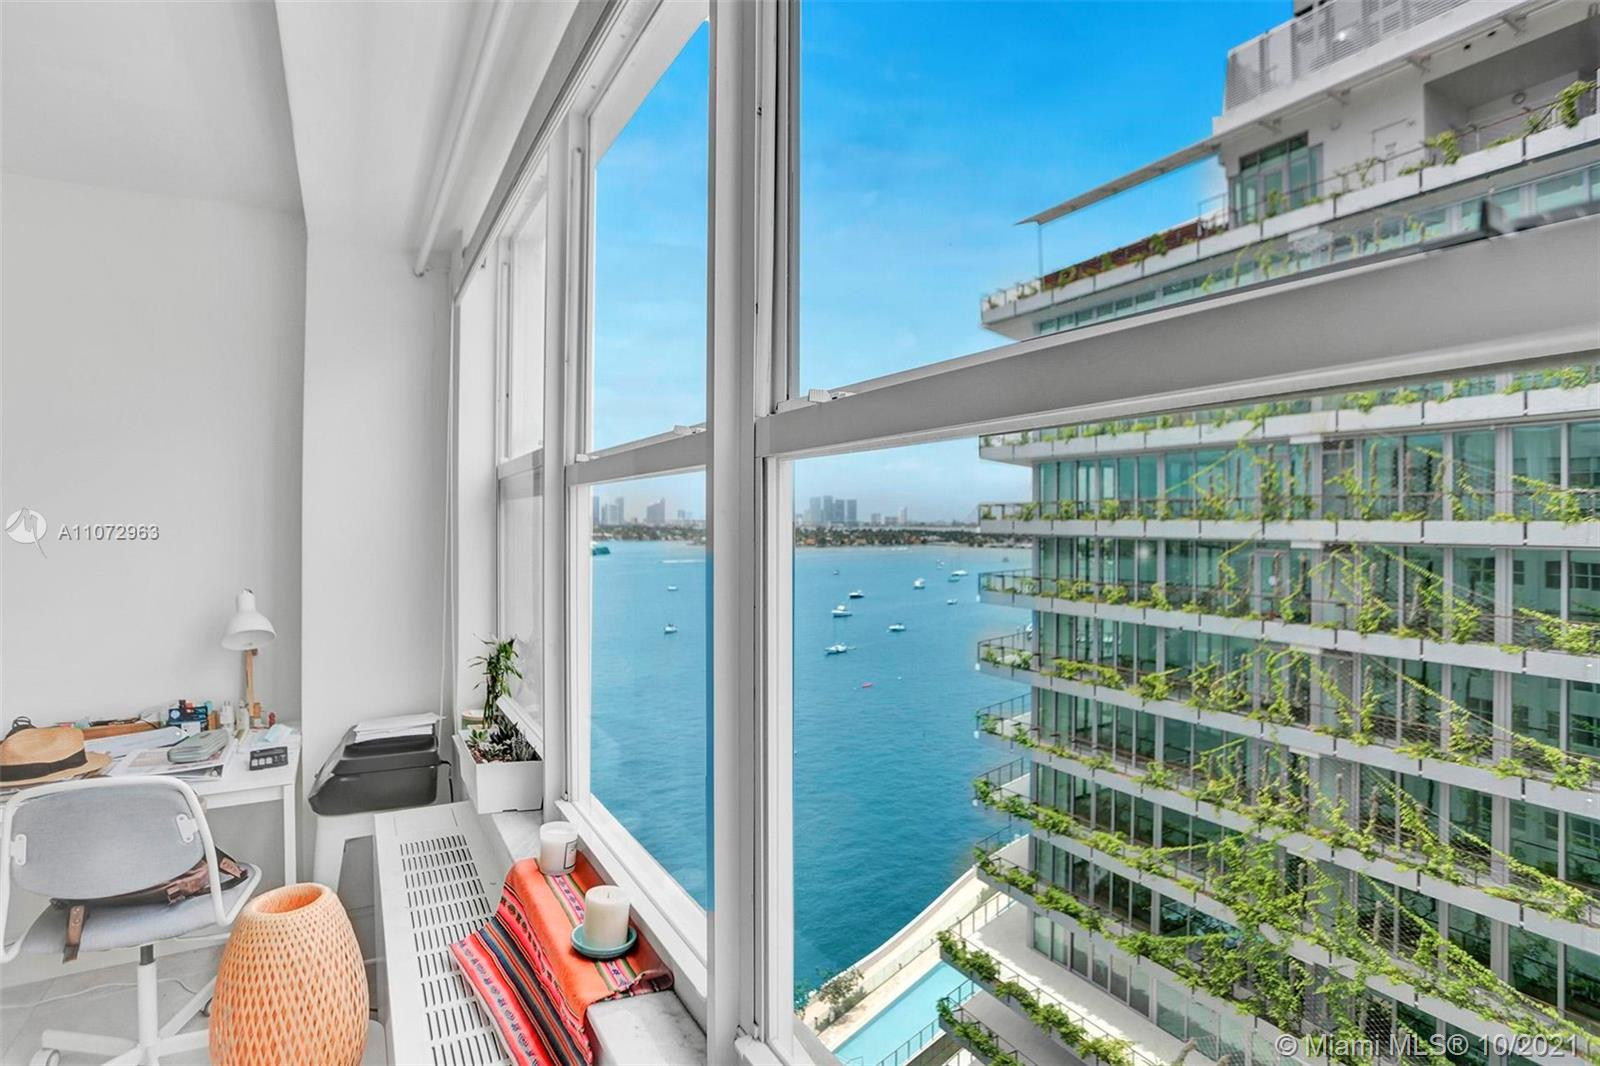 1250  West Ave #14B For Sale A11072963, FL